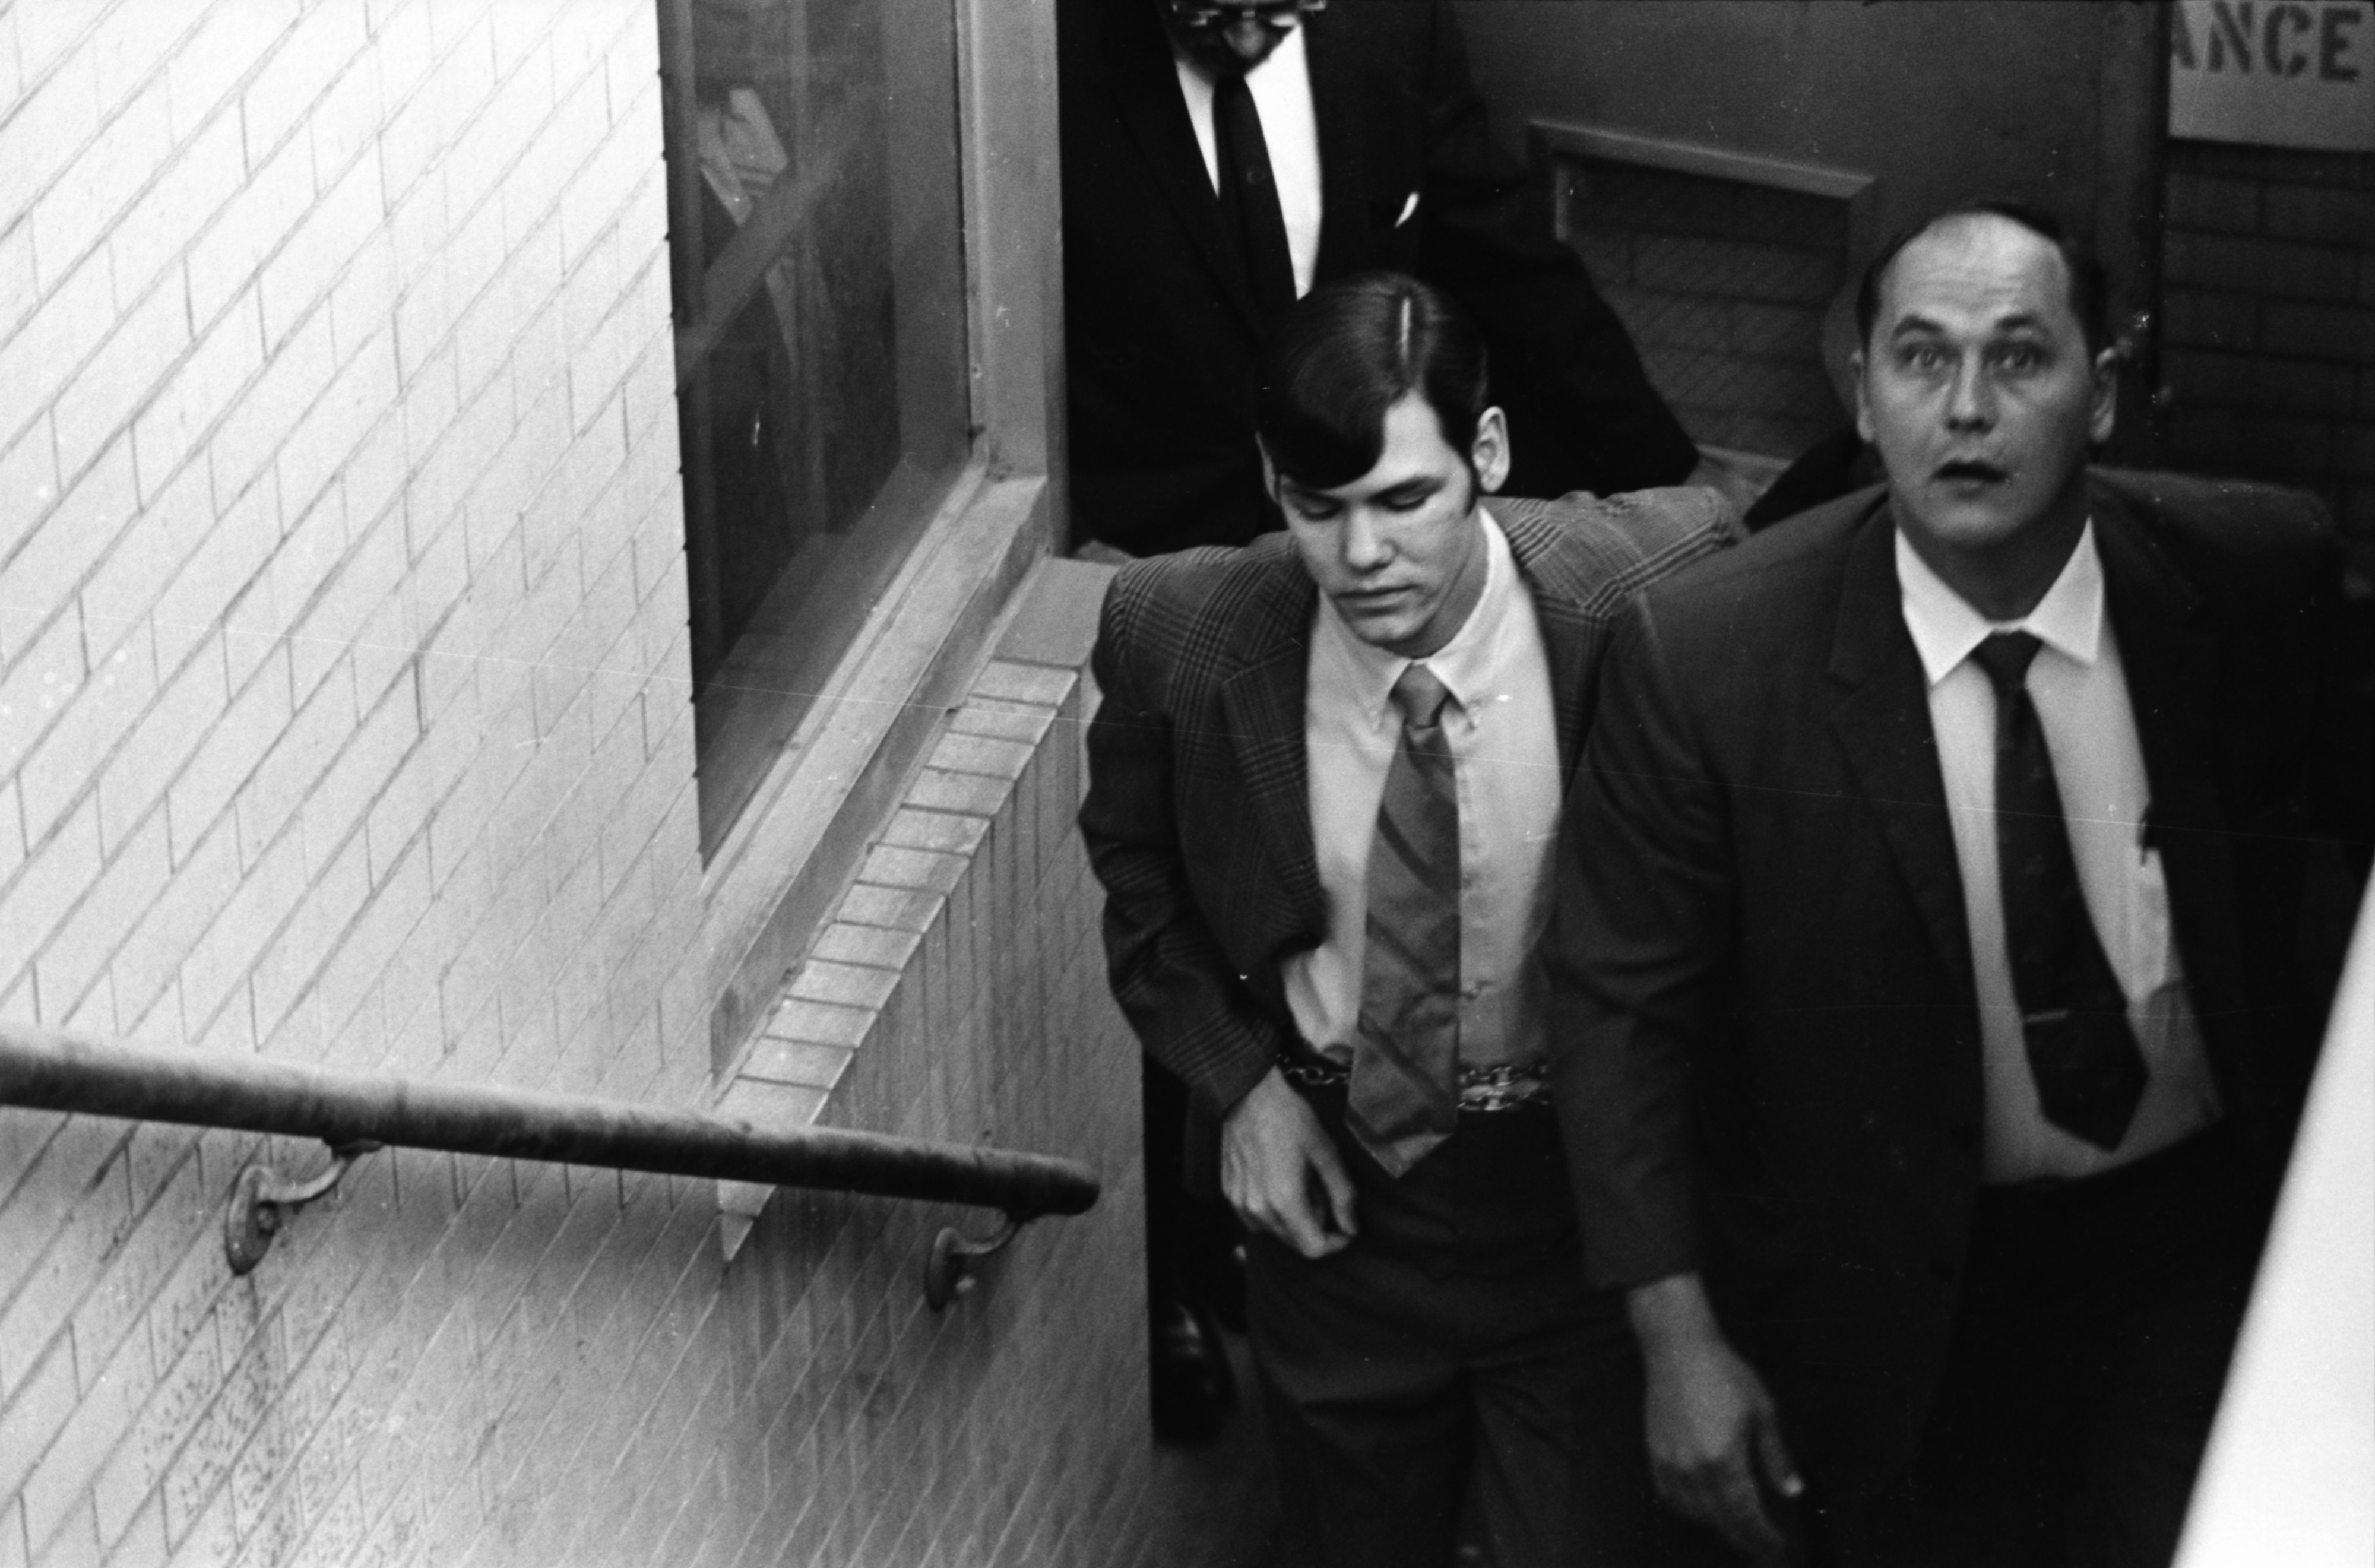 John Norman Collins Being Led from Washtenaw County Courthouse image